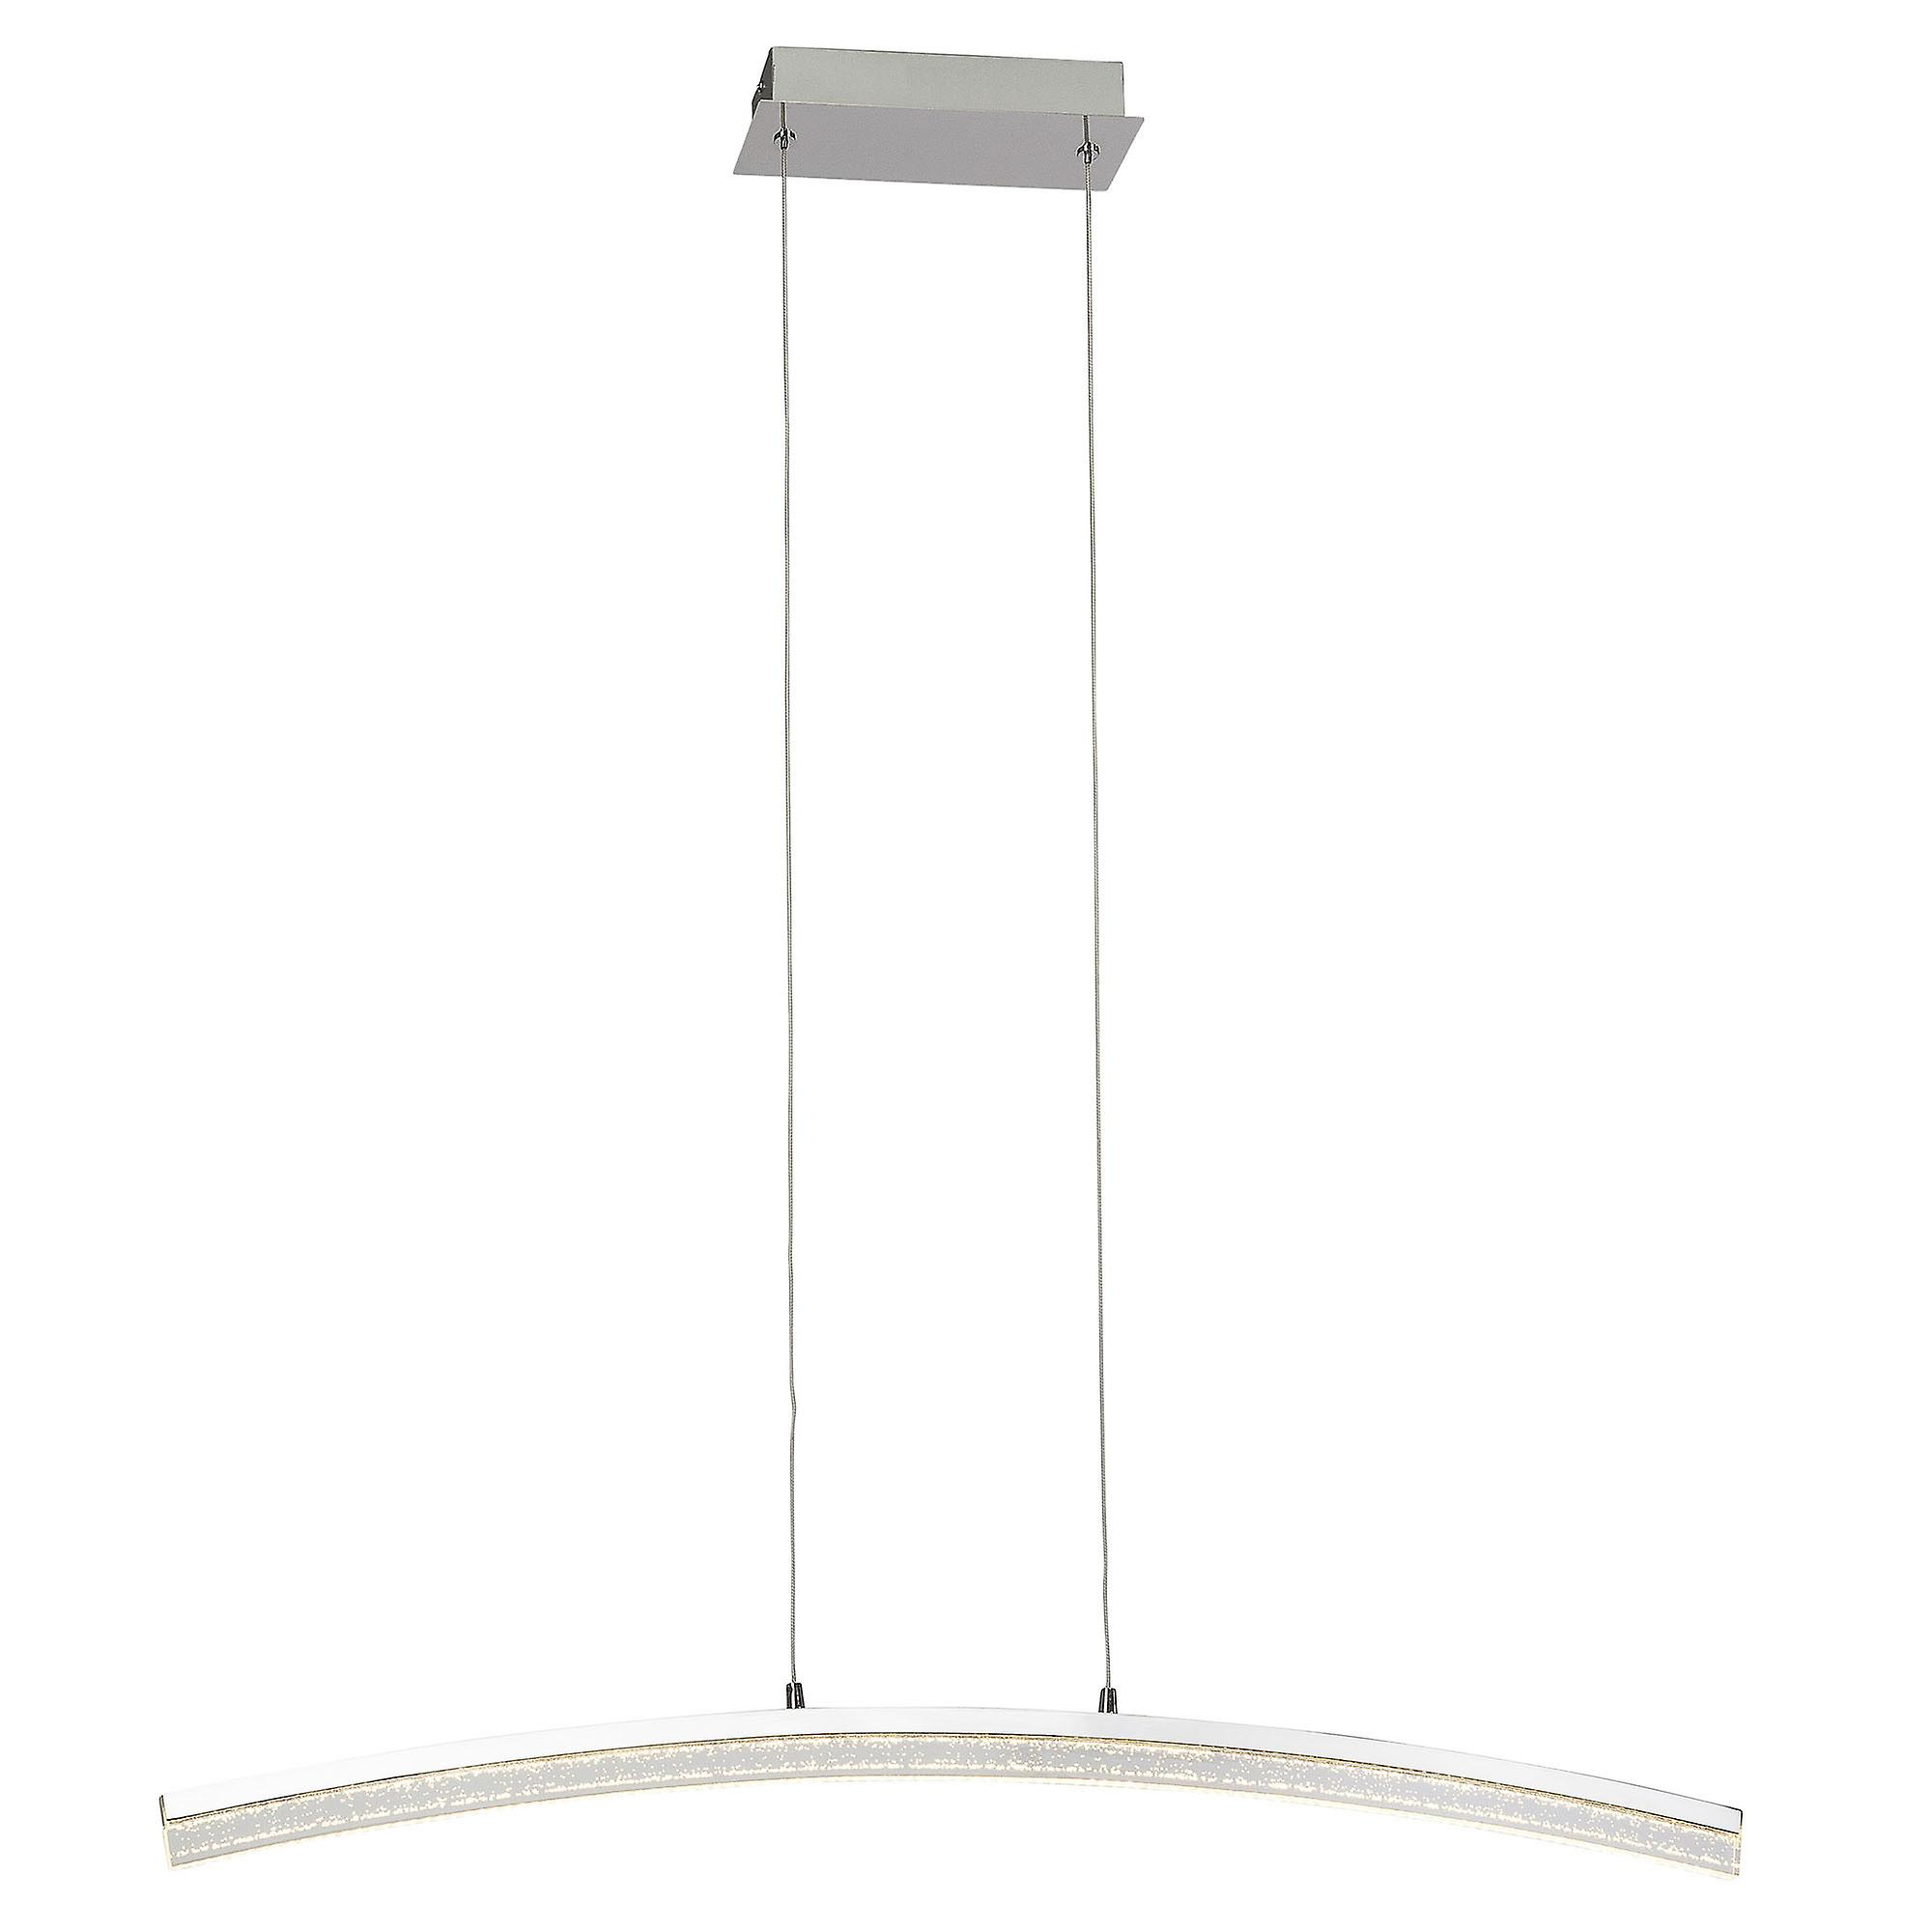 BRILLIANT lamp SPARKLING LED pendant lamp chrome Via wall switch dimmable in 3 stages I adjustable in height / cable can be shortened